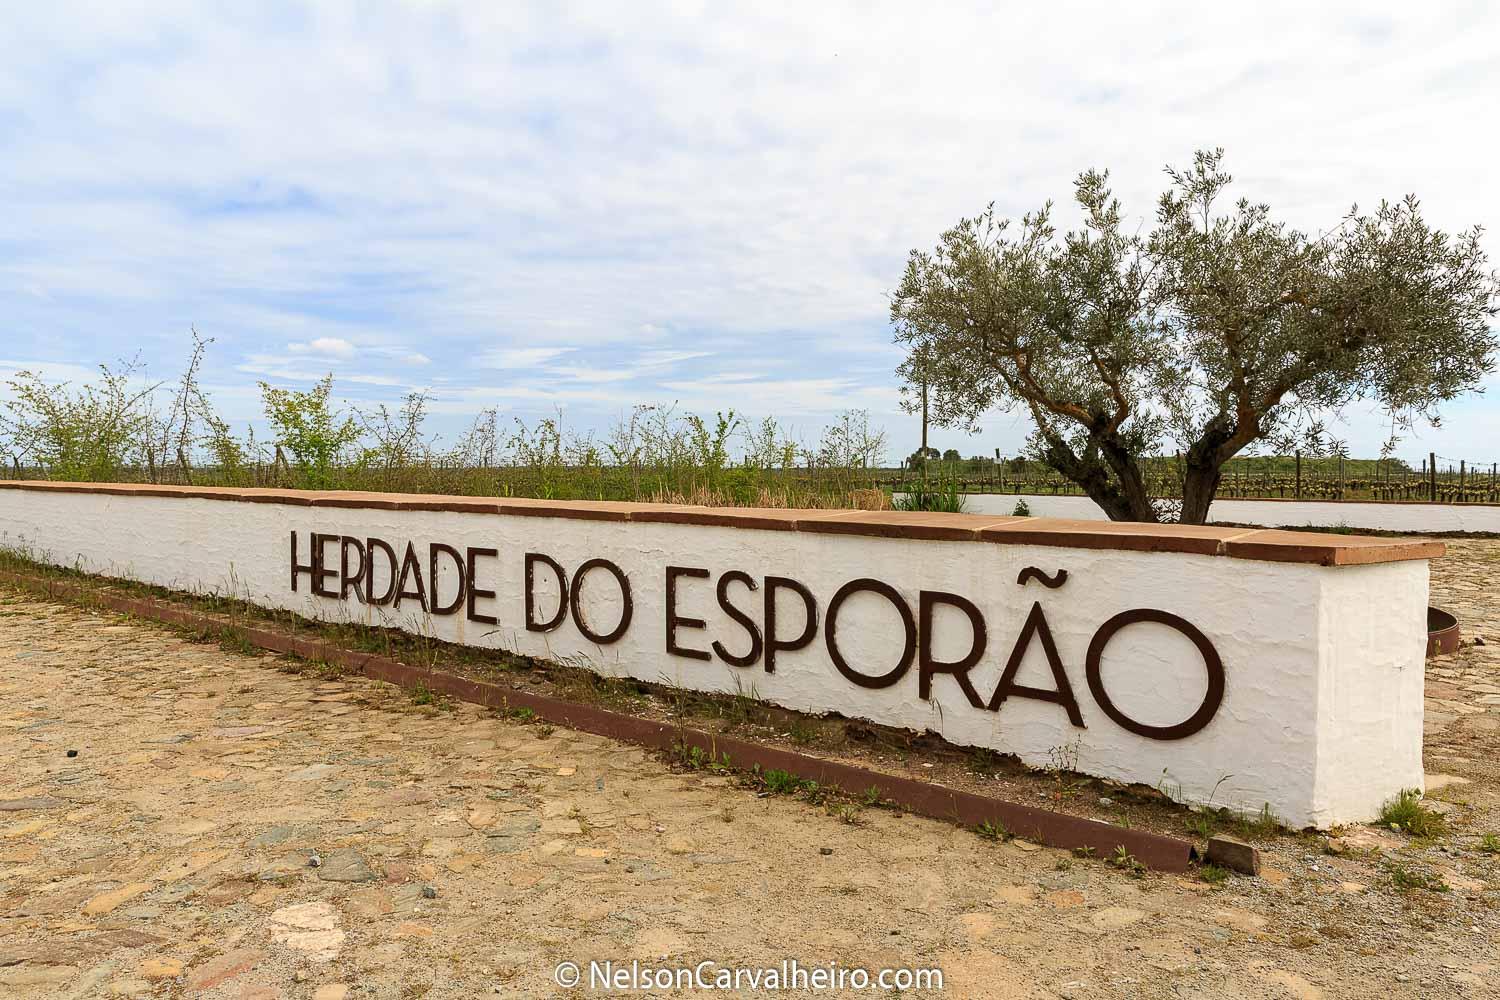 Alentejo Wine Travel Guide - Herdade do Esporão